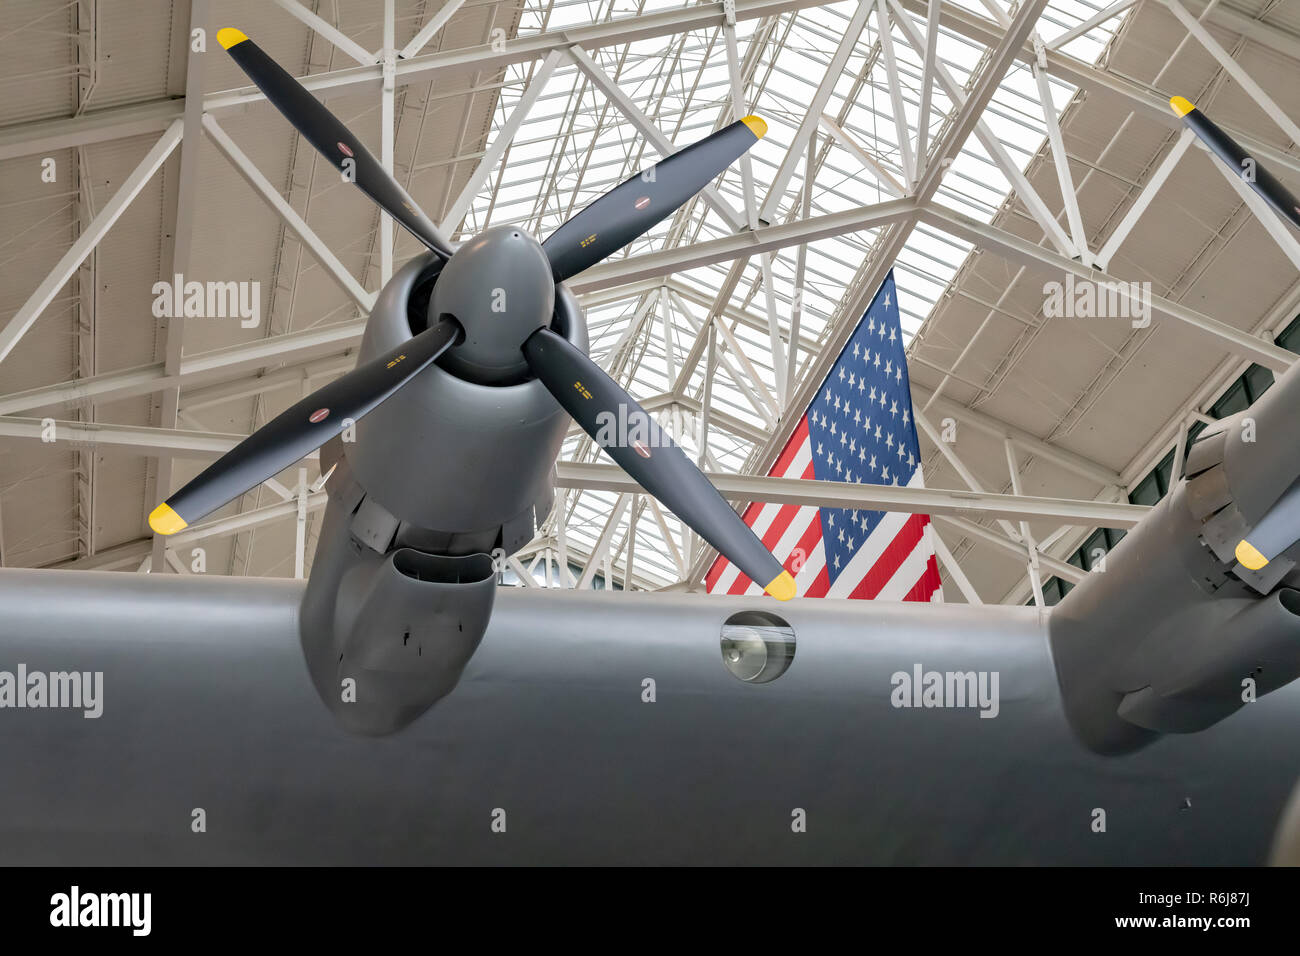 Howard Hughes' Spruce Goose (aka Flying Boat) at Evergreen Aviation & Space Museum in McMinnville, Oregon - Stock Image